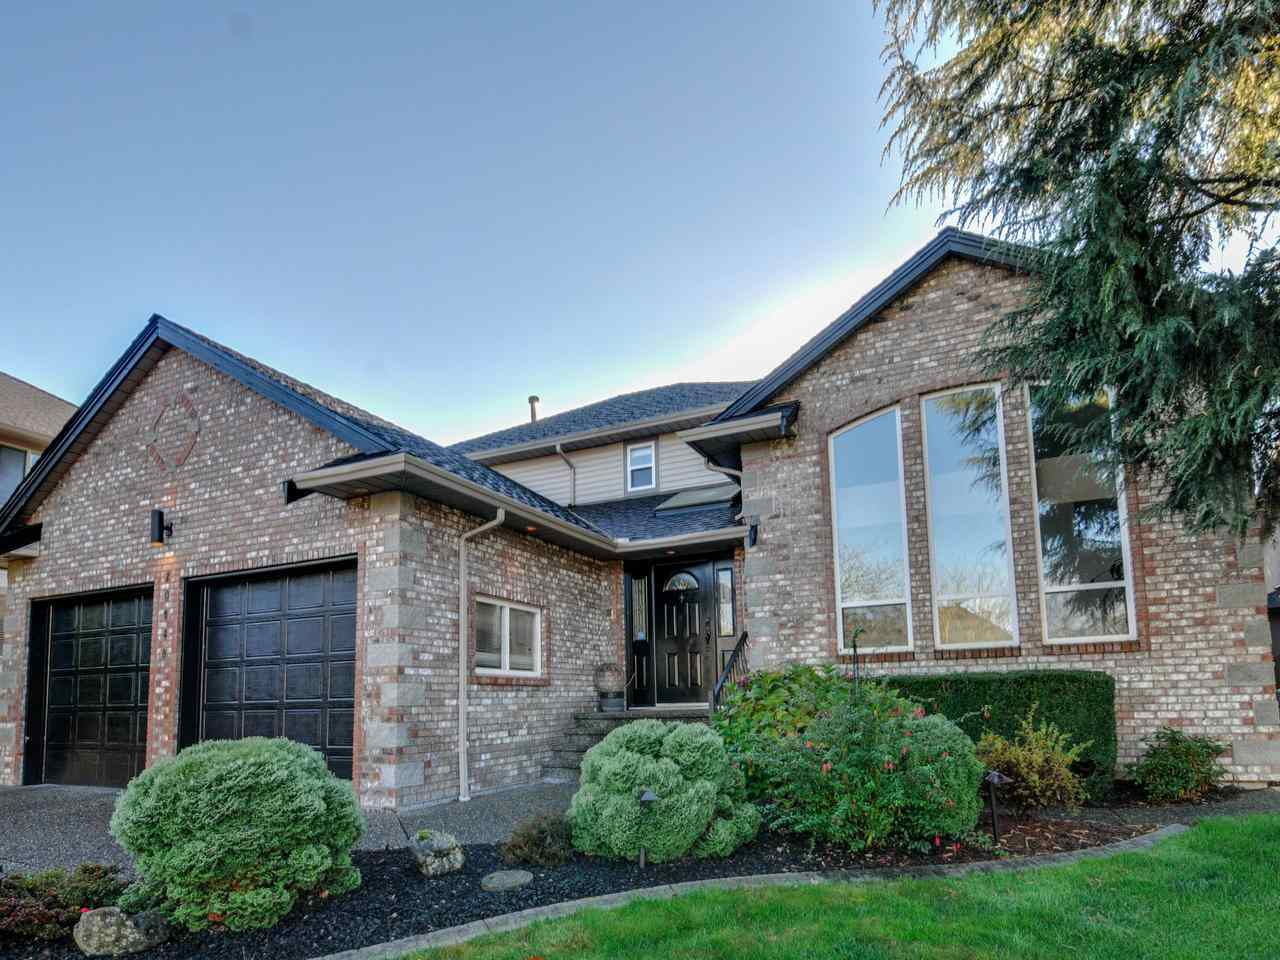 """Main Photo: 20648 91B Avenue in Langley: Walnut Grove House for sale in """"GREENWOOD ESTATES"""" : MLS®# R2323442"""